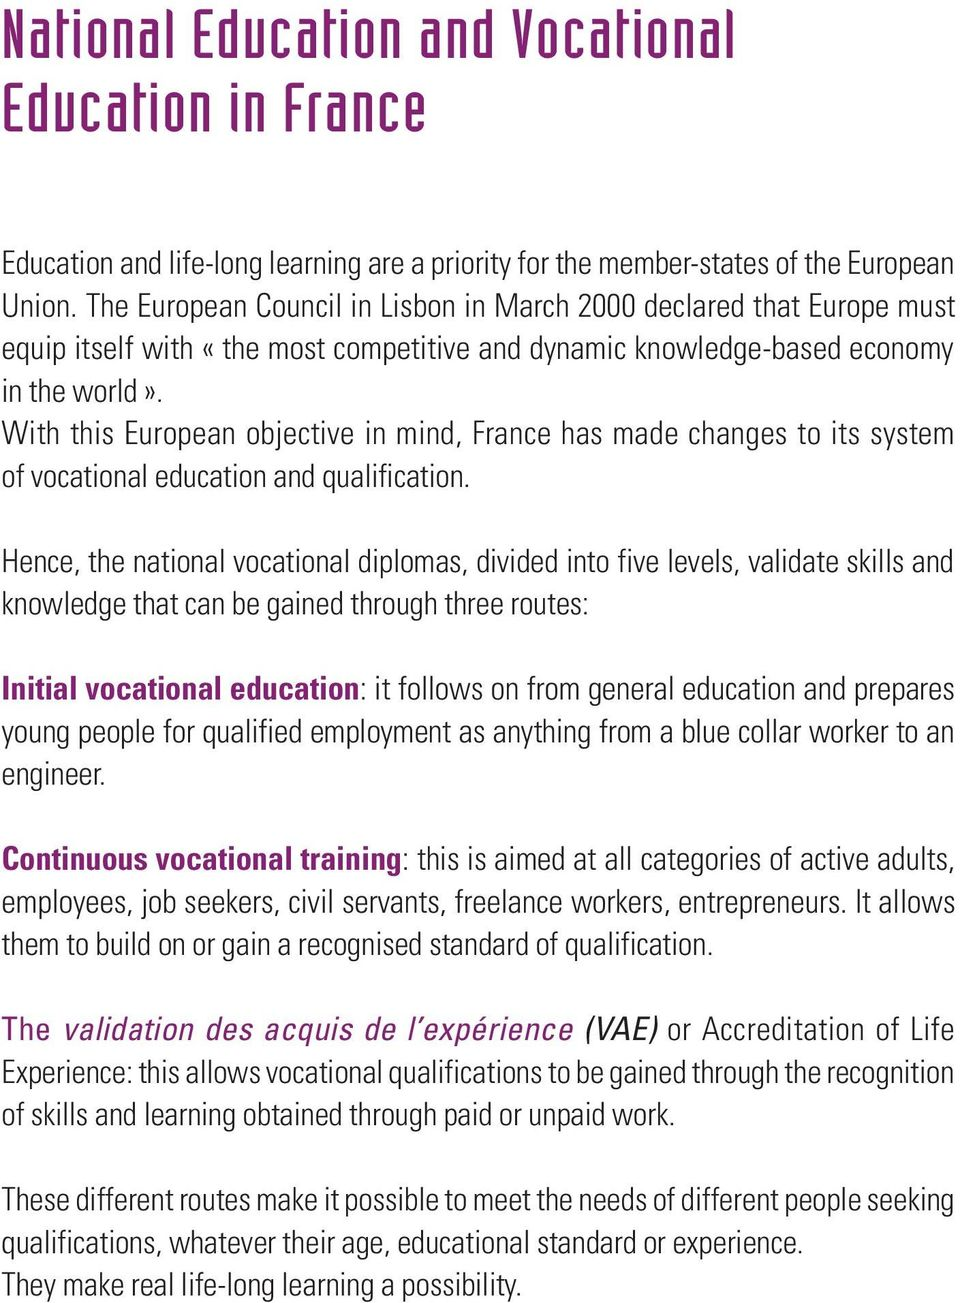 With this European objective in mind, France has made changes to its system of vocational education and qualification.